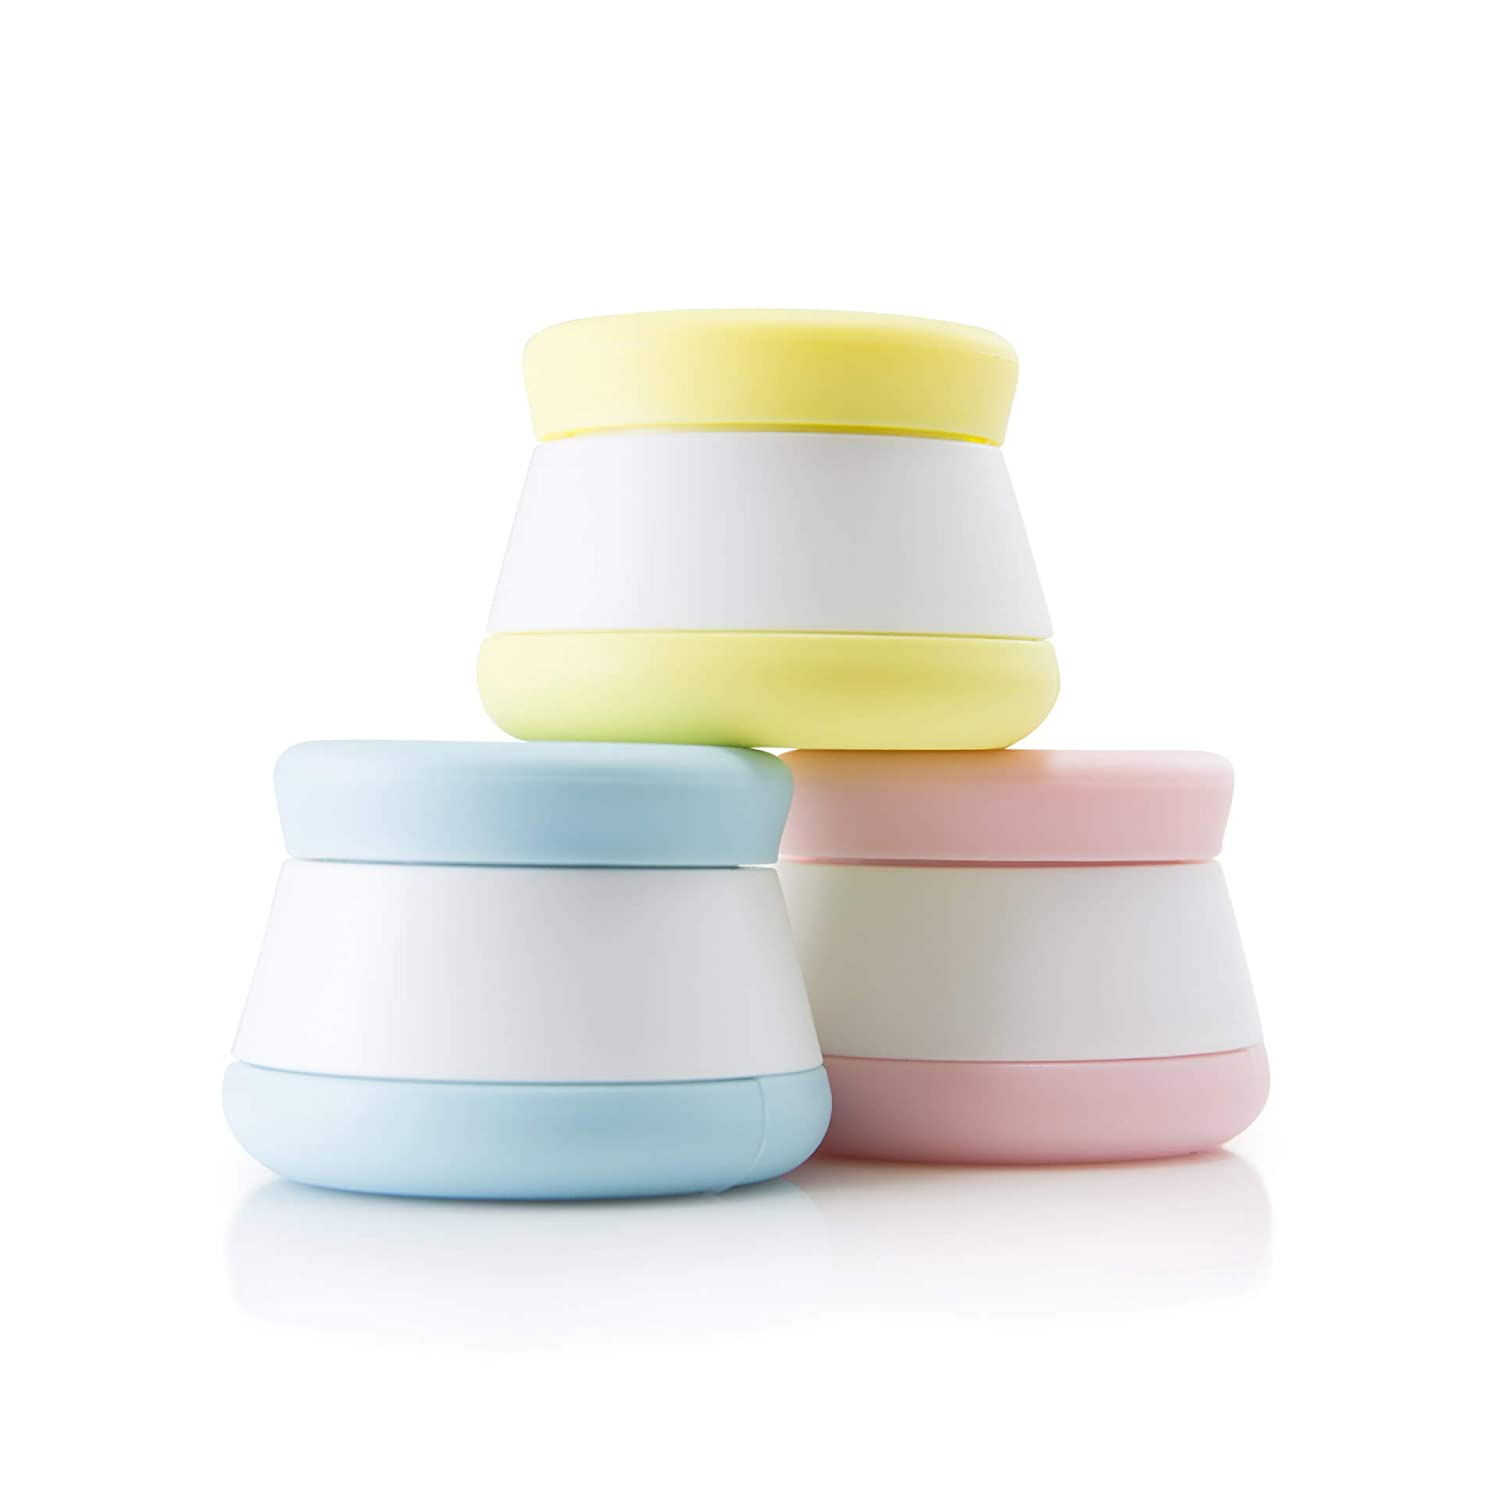 Travel Containers, Silicone Cream Jars – LEAK-PROOF – TSA Approved Small Travel Containers 3 Pack